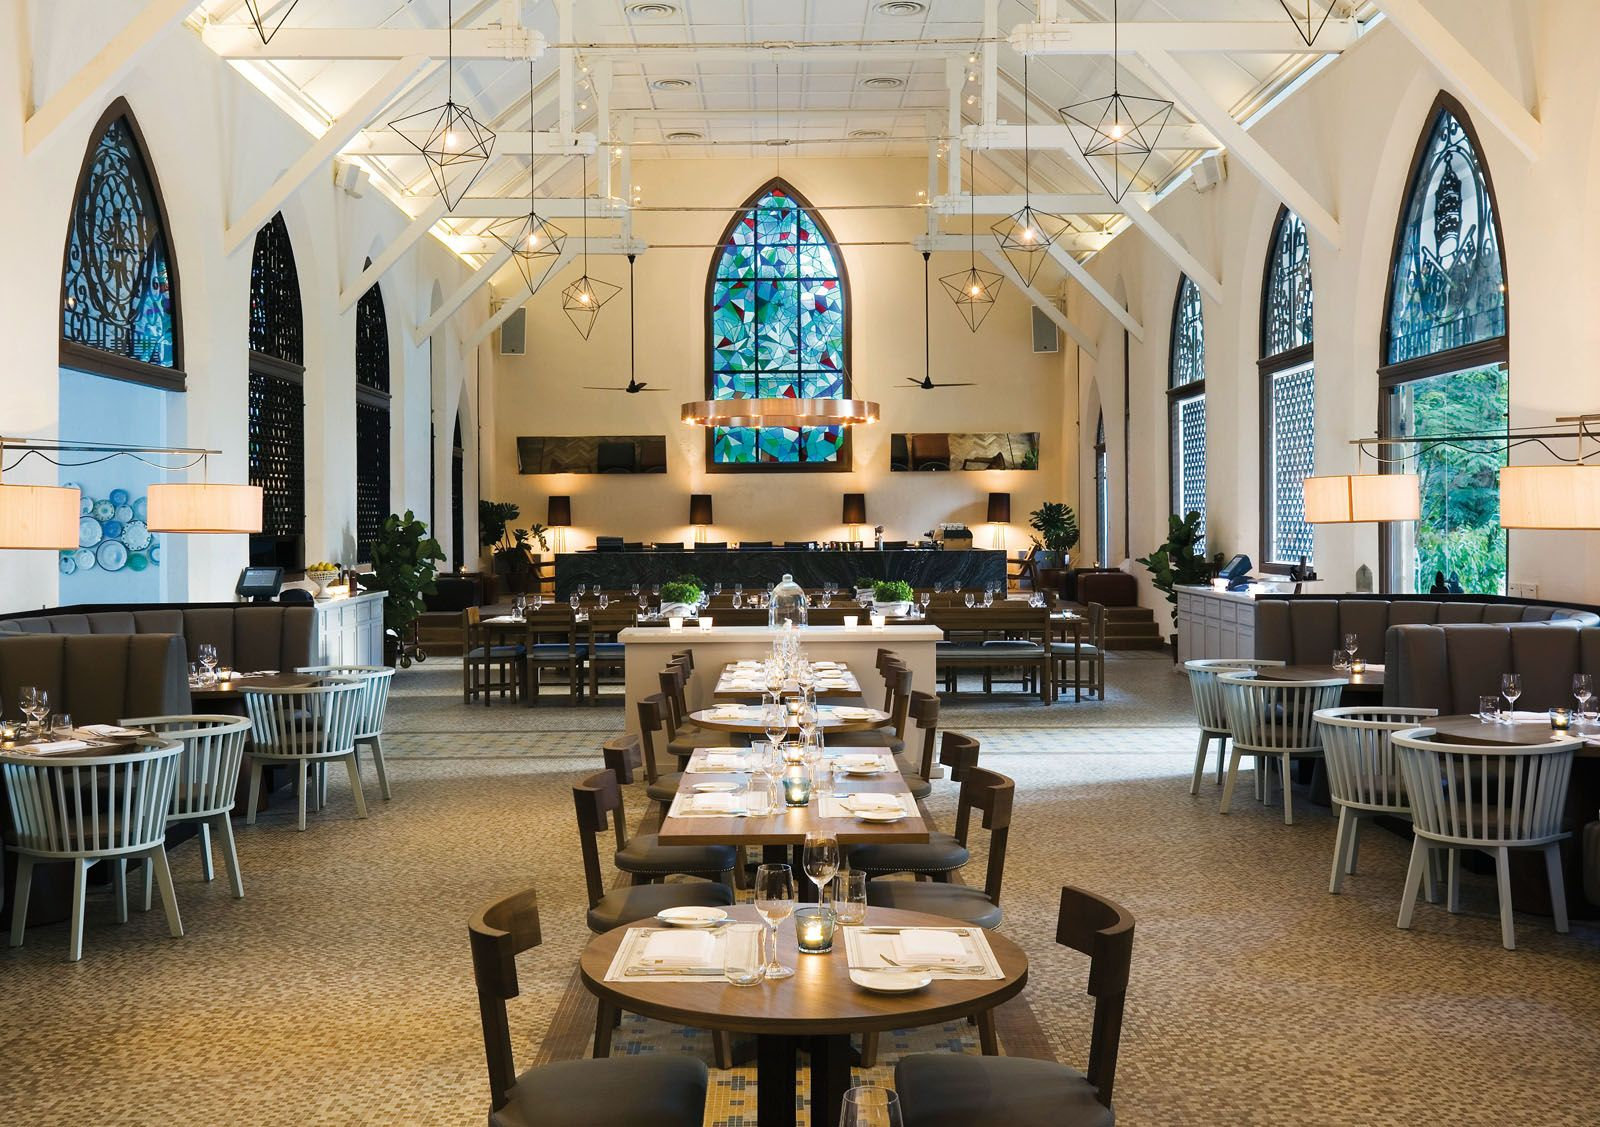 The White Rabbit is a restaurant-bar housed in a former chapel